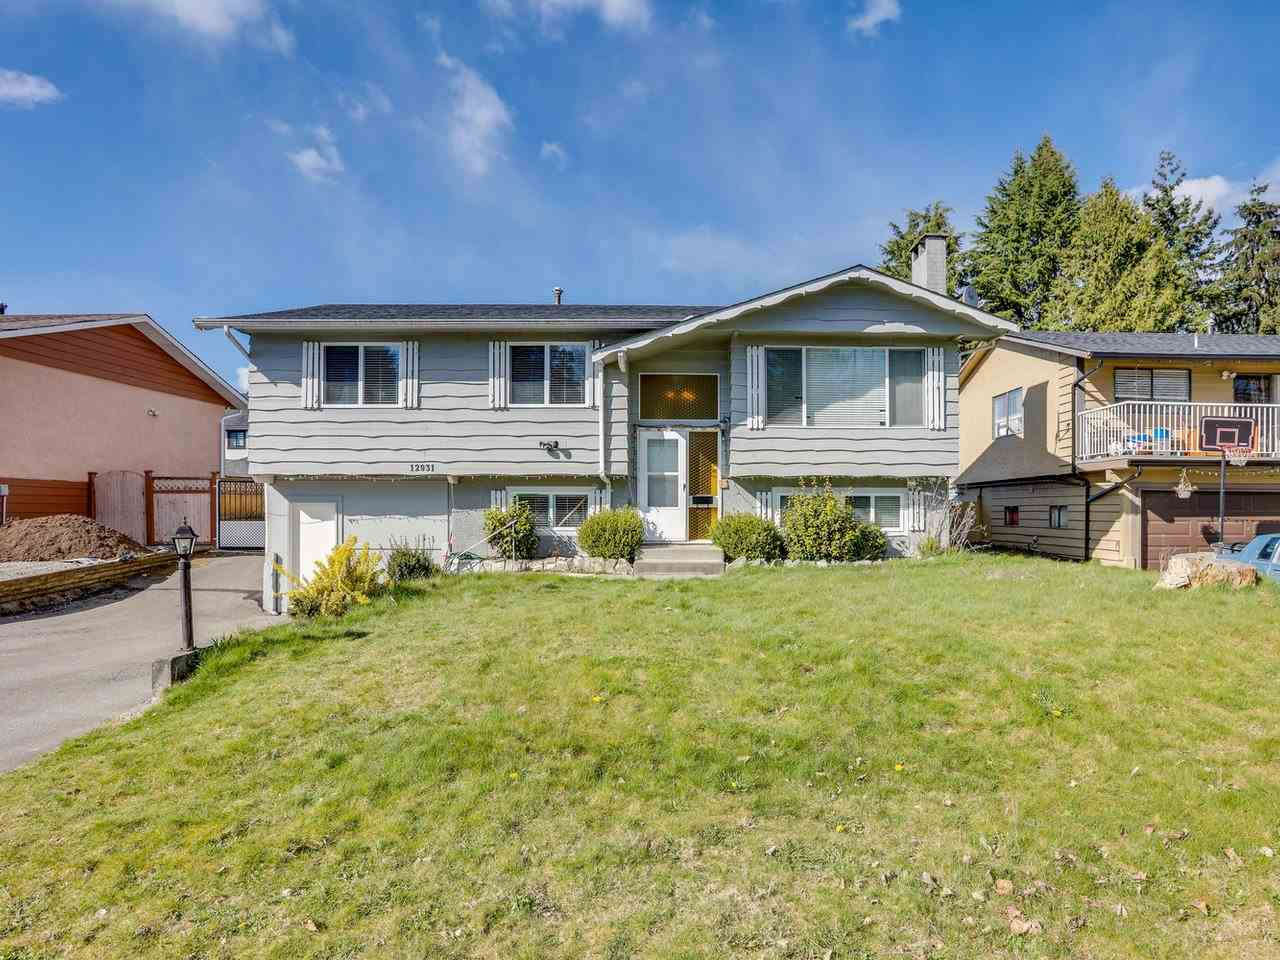 12931 92A AVENUE - Queen Mary Park Surrey House/Single Family for sale, 6 Bedrooms (R2564759)